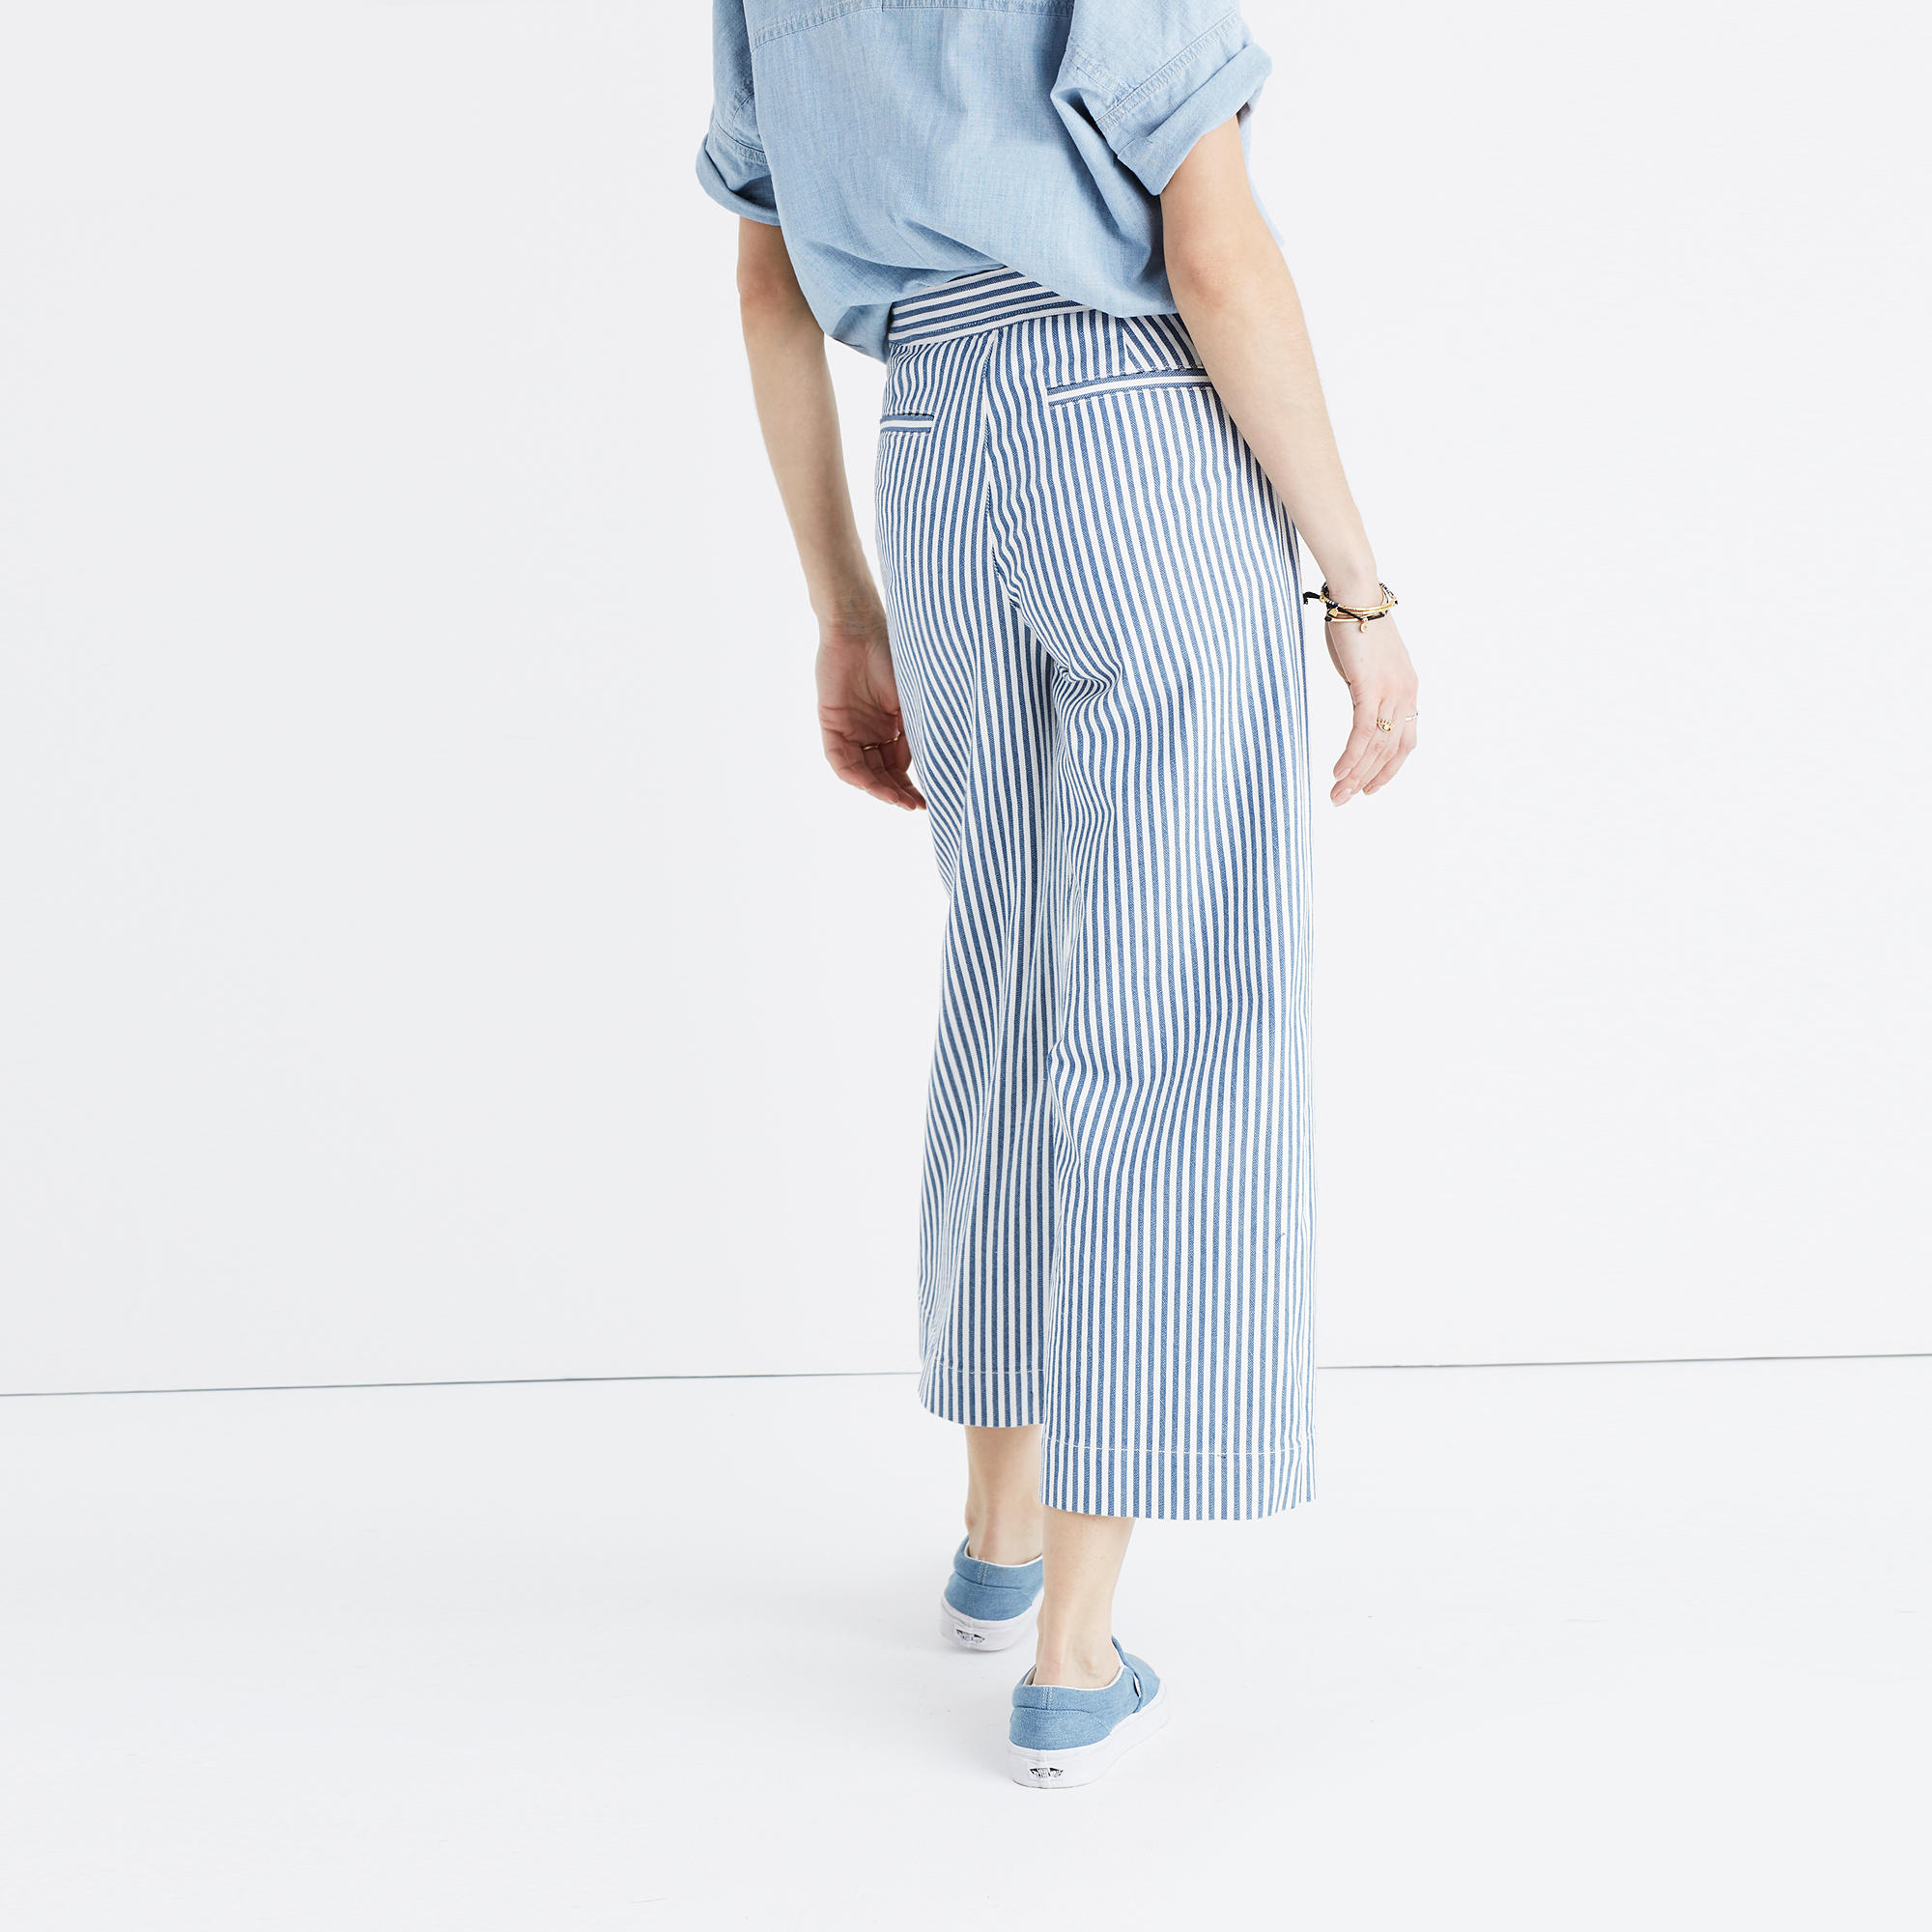 Sale Clearance Clearance Low Price Cropped Striped Wide-leg Jeans - Blue Madewell Discount Very Cheap GGcKaF